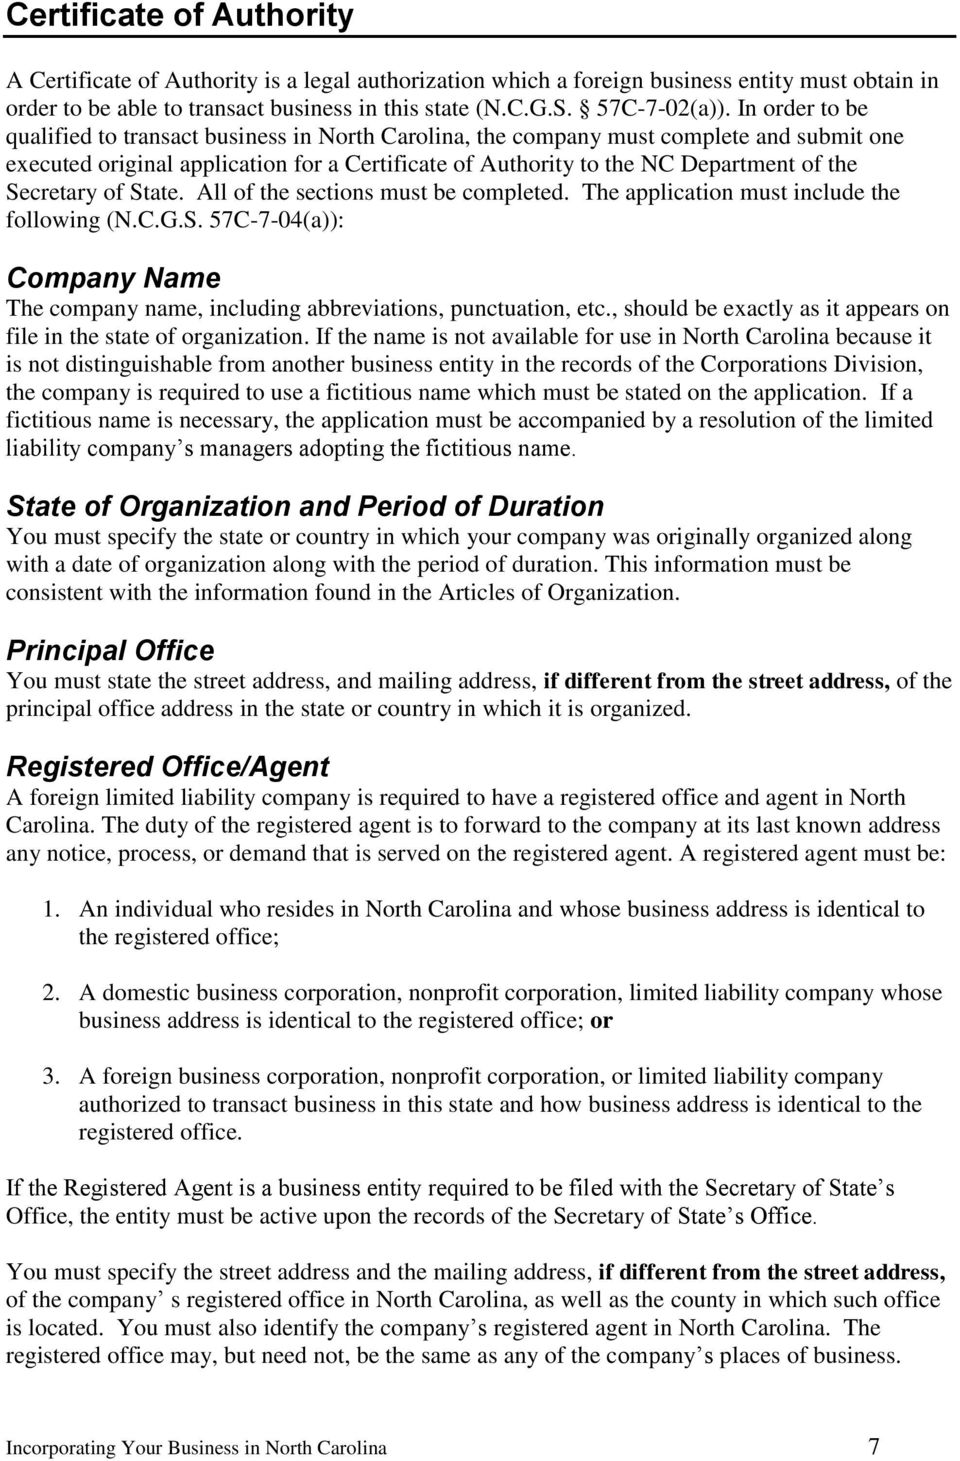 Secretary of State. All of the sections must be completed. The application must include the following (N.C.G.S. 57C-7-04(a)): Company Name The company name, including abbreviations, punctuation, etc.